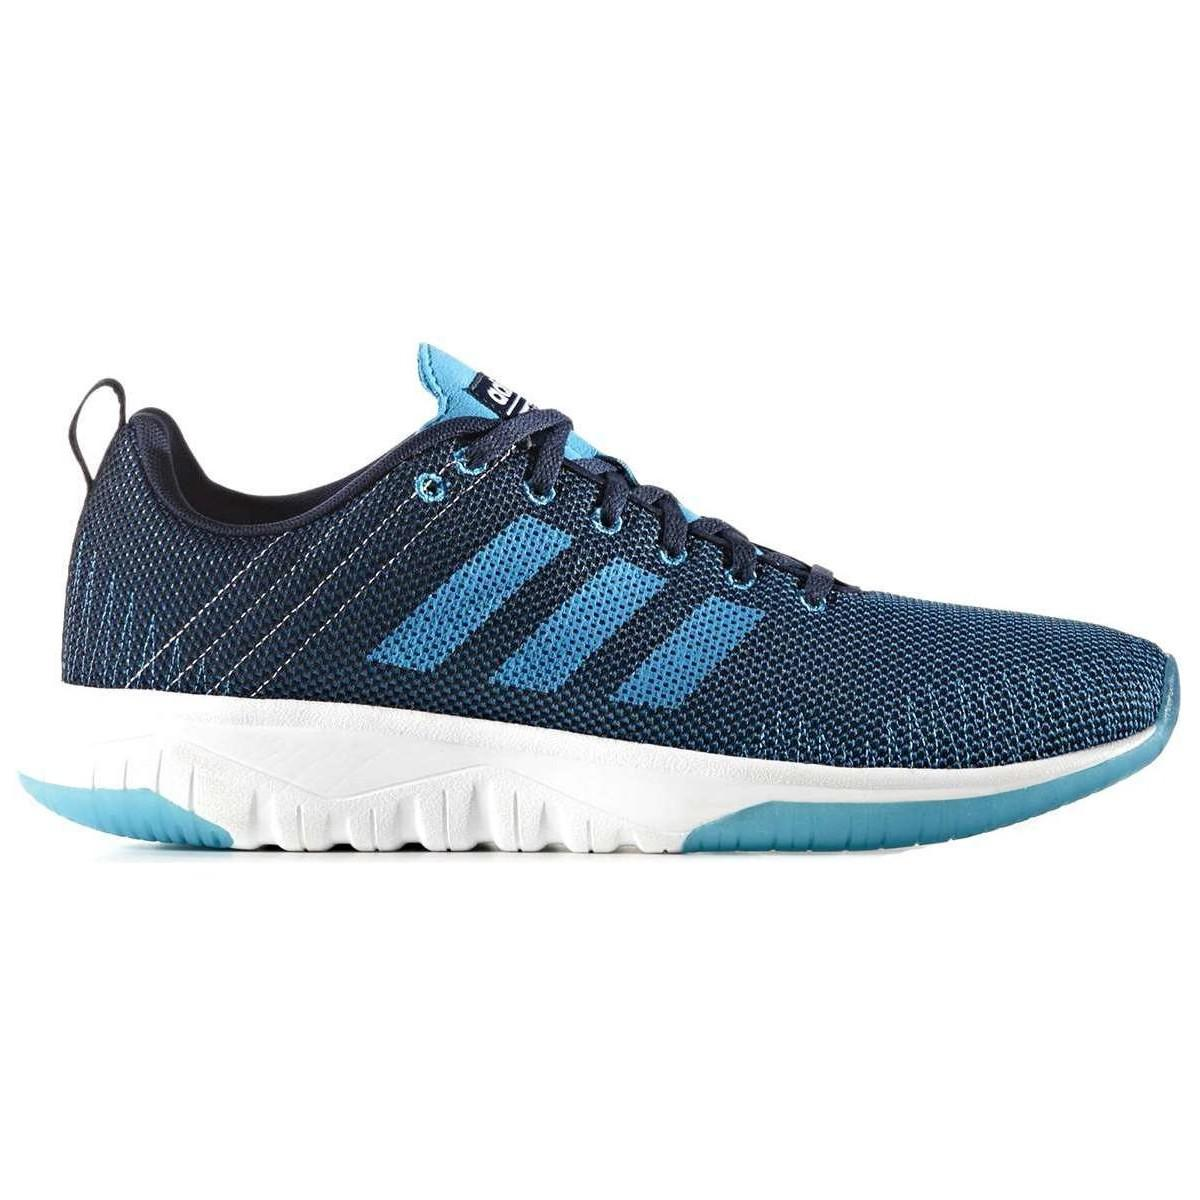 best website 1636a fce66 adidas Aw4174 Sneakers Man Blue Men s Shoes (trainers) In Blue in ...